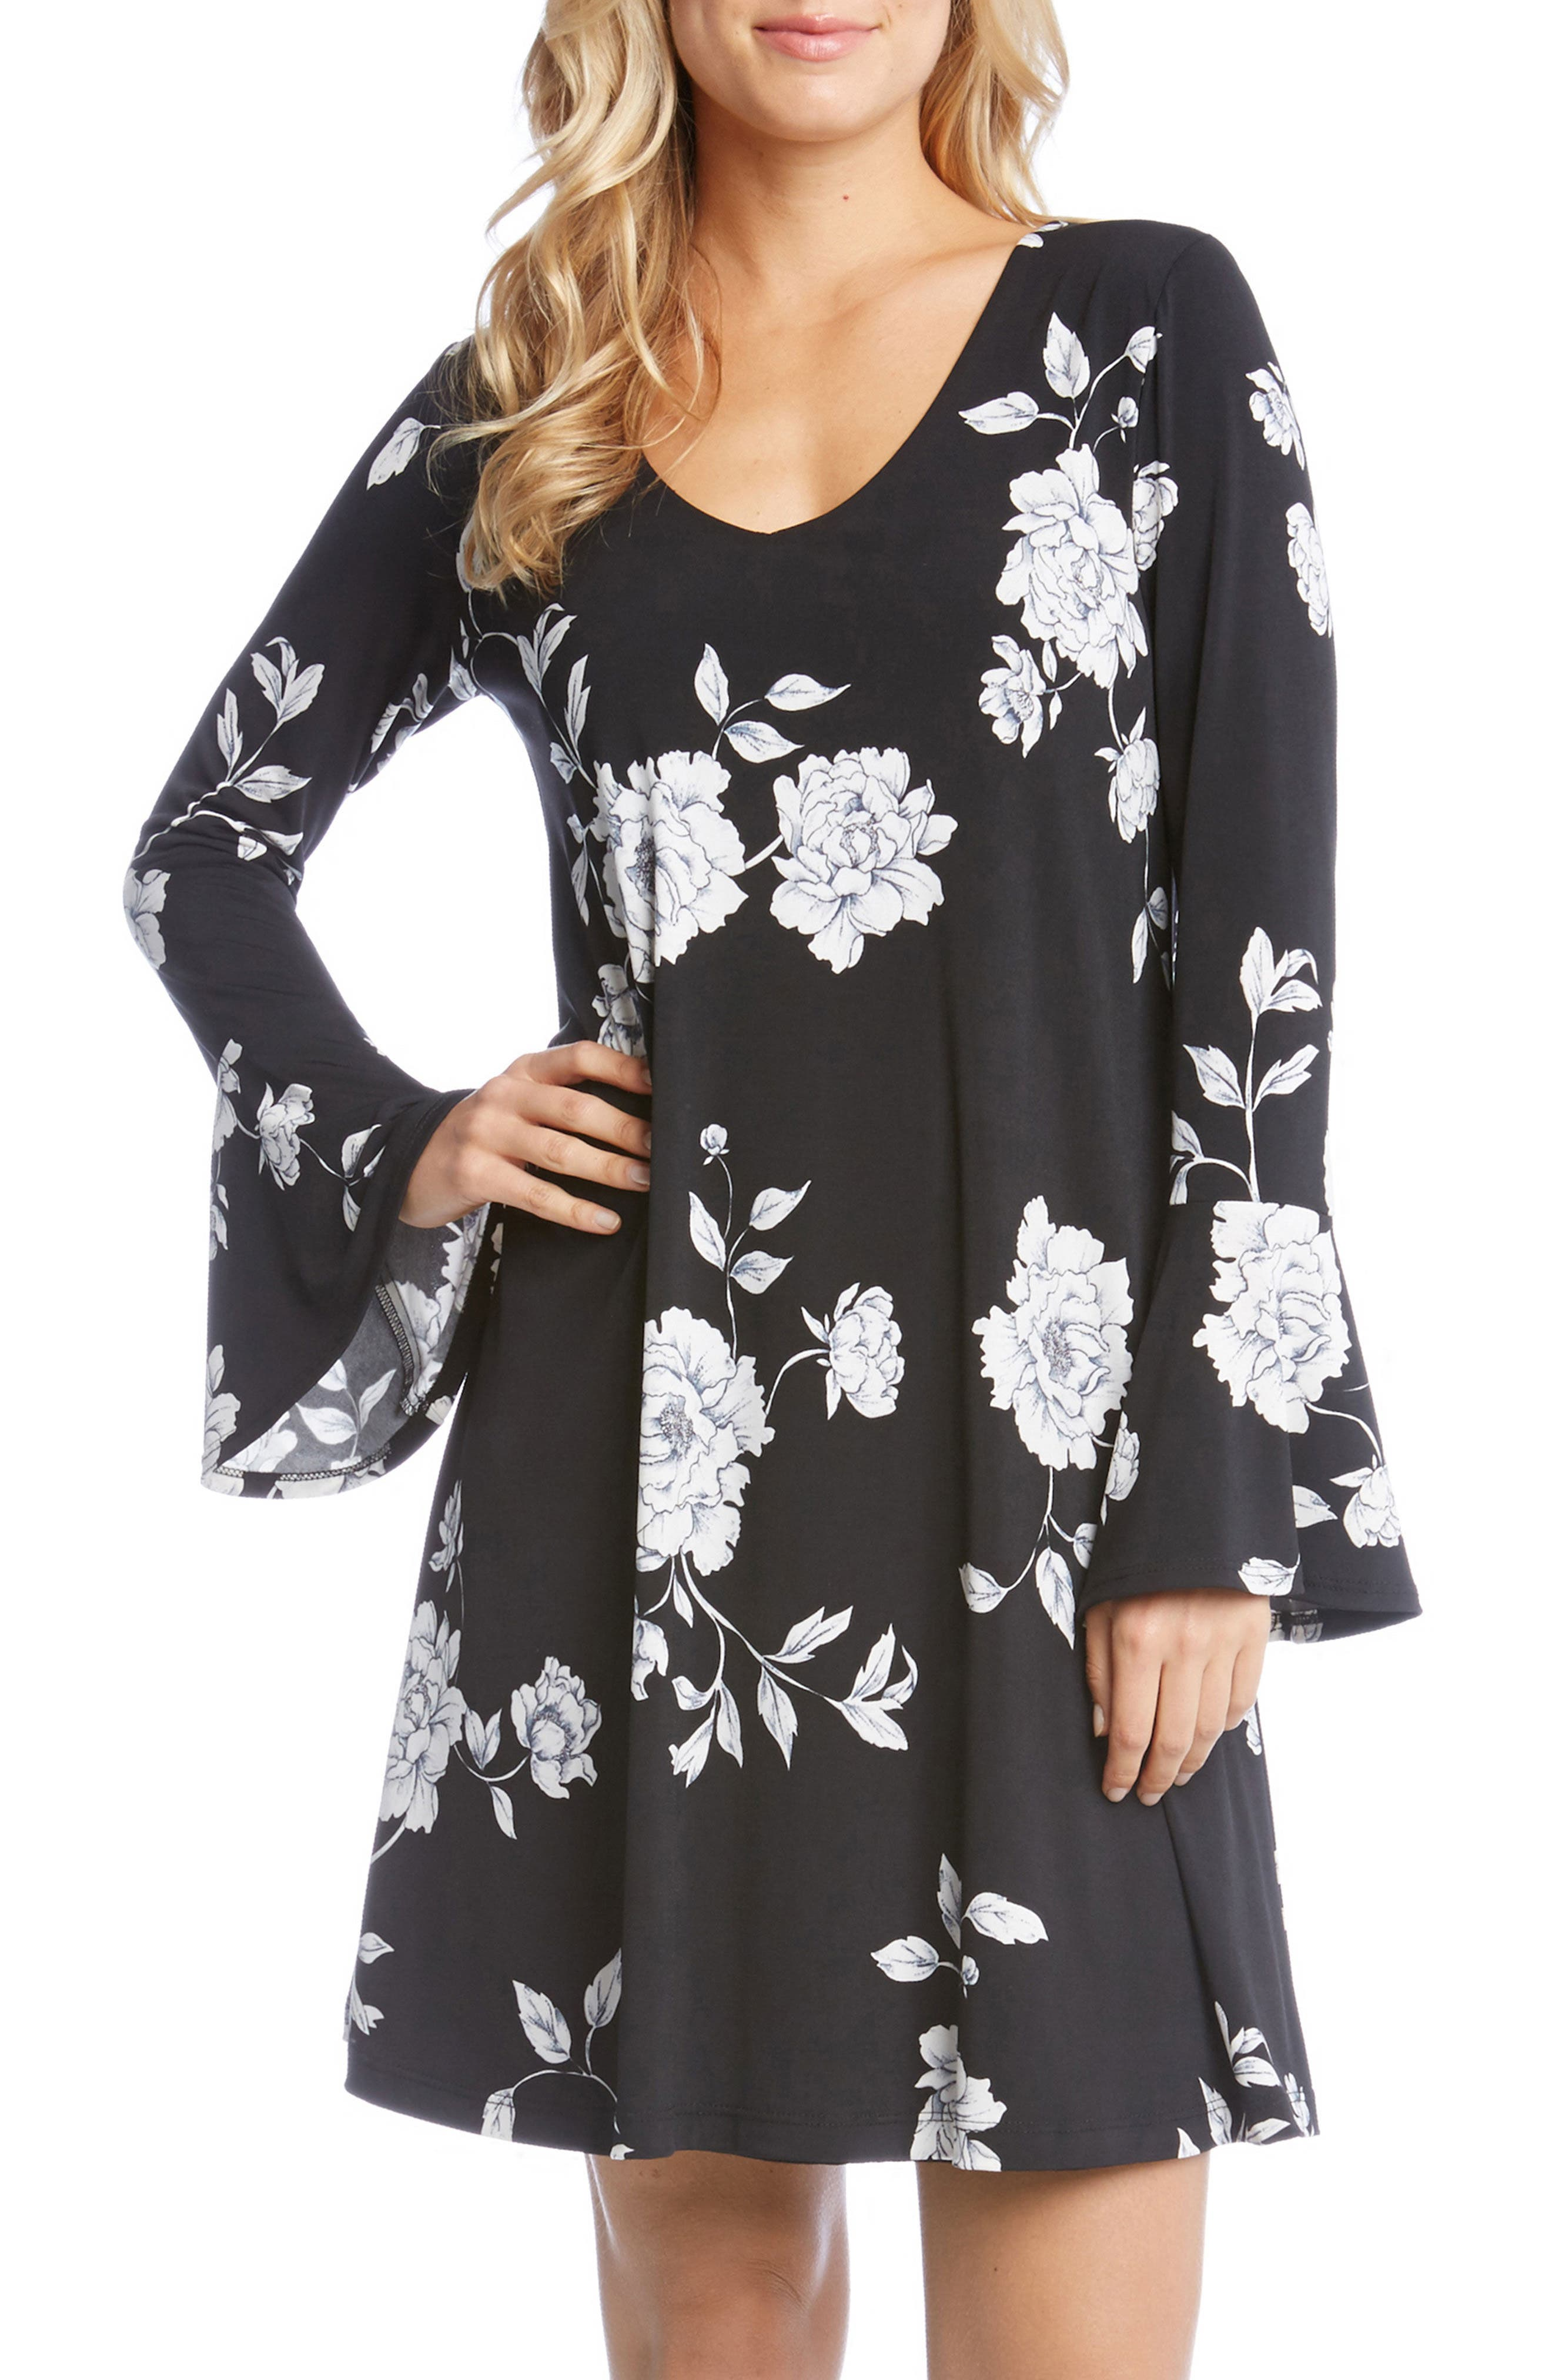 Taylor Bell Cuff Floral A-Line Dress,                             Main thumbnail 1, color,                             Flower